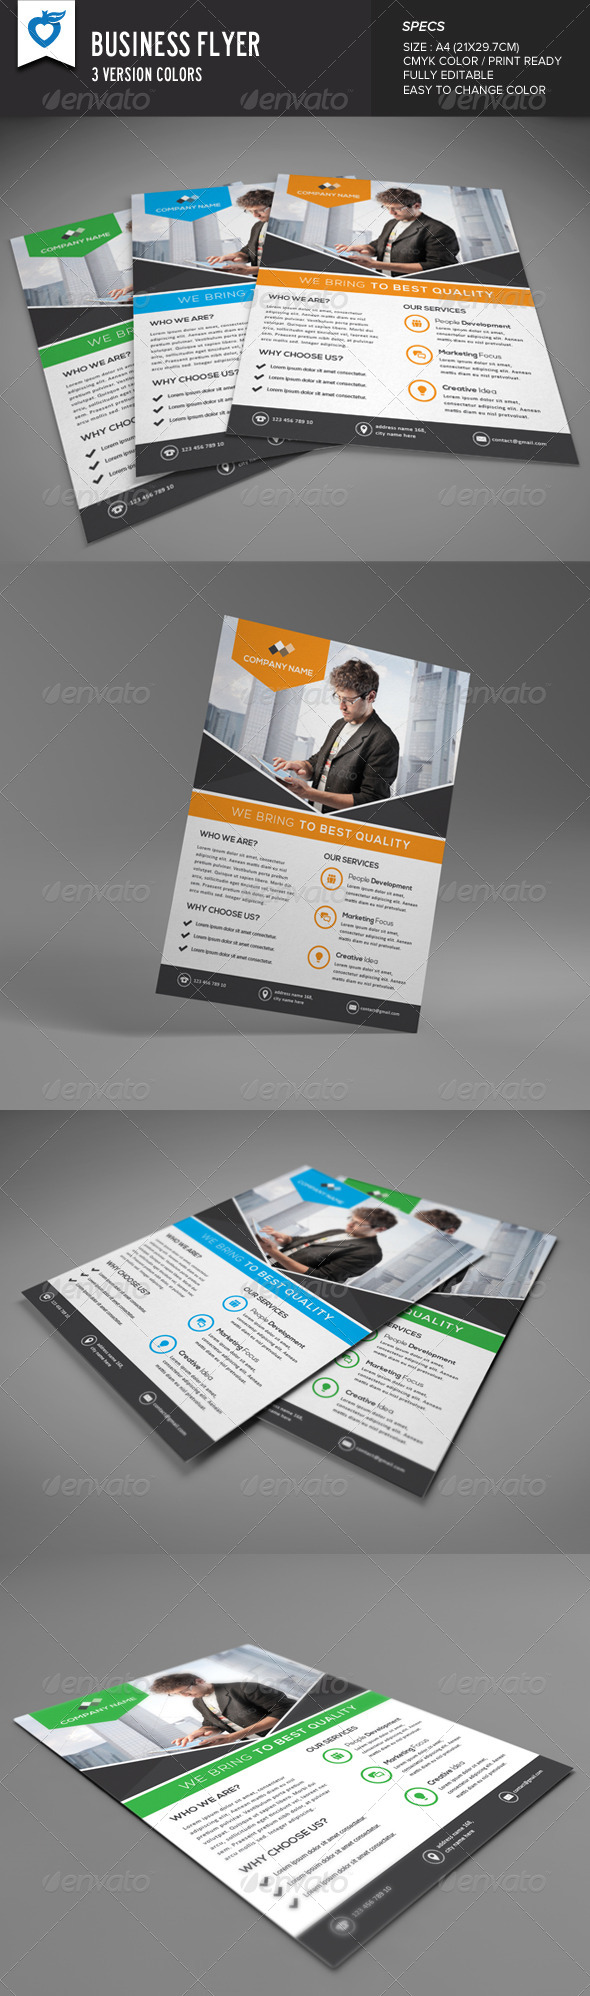 GraphicRiver Business Flyer Multipurpose 8372360